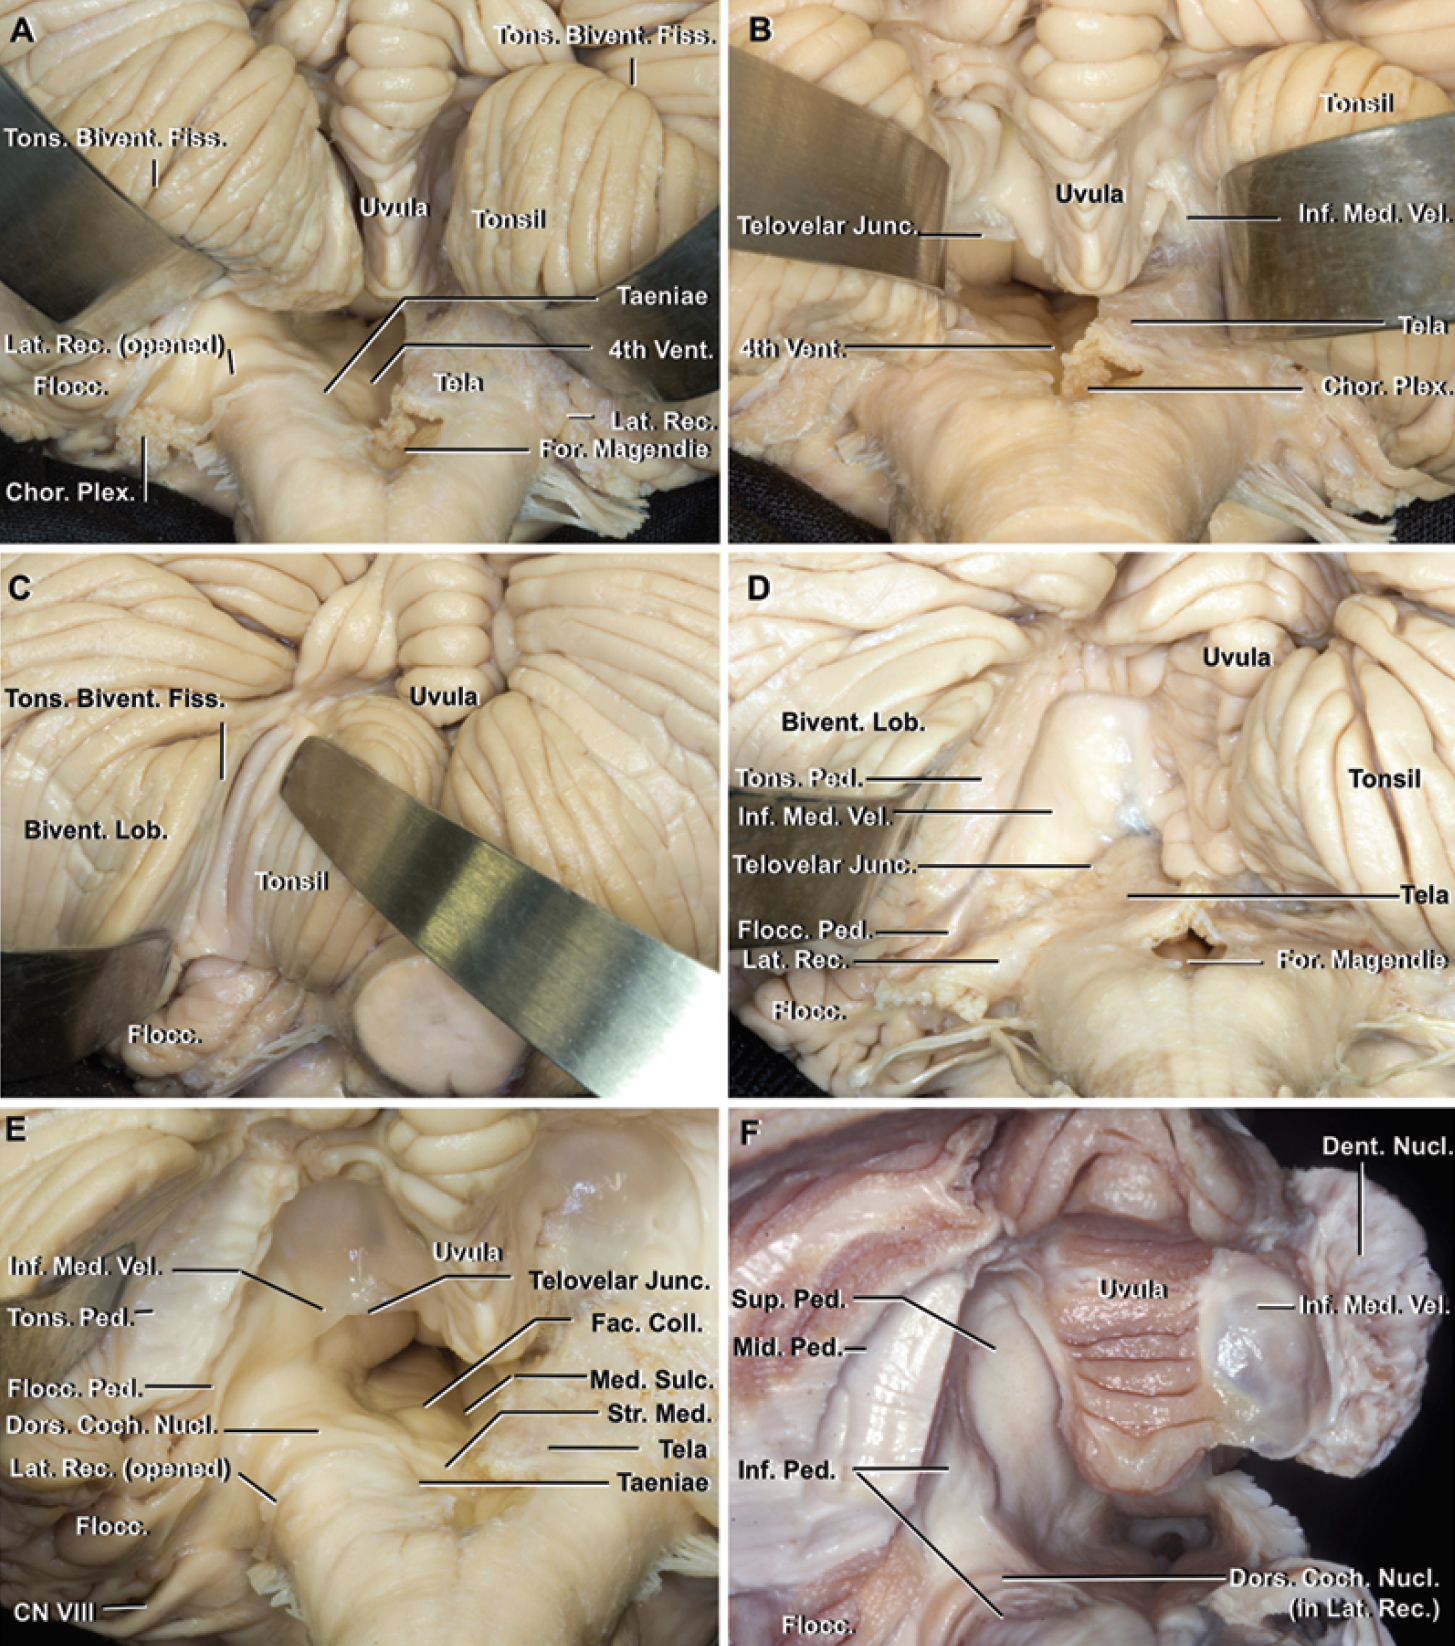 FIG. 6. Cerebellomedullary fissure. a: Elevation of the tonsil and biventral lobule and opening of the medullotonsillar space and lateral recess provides access to the fourth ventricle, lateral recess, and lower surface of the flocculus. The spatula is on the tonsillobiventral fissure. The floor of the fourth ventricle and the left lateral recess have been exposed by incising the tela adjacent to the inferolateral margin of the fourth ventricle and lateral recess. b: Opening the uvulotonsillar space by retracting the tonsil laterally exposes the supratonsillar space and provides access to the telovelar junction and inferior medullary velum. c: Opening the left tonsillobiventral fissure exposes the tonsillar peduncle at the superolateral edge of the tonsil, and provides access to the area just below the dentate nucleus and middle and inferior cerebellar peduncles. d: The left tonsillar peduncle has been divided and the tonsil removed. The tonsillar peduncle, located along the superolateral margin of the tonsil, is the only neural attachment of the tonsil to the remainder of the cerebellum. e: Both tonsils have been removed and the tela and left lateral recess have been opened. The peduncle of the flocculus, the connection between the lateral edge of the inferior medullary velum and the flocculus, is located just ventral to the tonsillar peduncle. The lateral recess, the site of the dorsal cochlear nucleus, is located ventral to the peduncle of the flocculus. The striae medullaris and facial colliculus, which are landmarks for the safe entry zones in the floor of the fourth ventricle, are exposed on the left half of the floor. F: The tonsillar peduncle is formed mainly by fibers of the middle cerebellar peduncle. The inferior cerebellar peduncle is located ventromedial to the middle cerebellar peduncle, and forms the inferior half of the lateral wall of the fourth ventricle. The dorsal cochlear nucleus sits on the dorsal surface of the inferior cerebellar peduncle. Bivent. = biventral; Chor. Plex. = choroid plexus.; CN = cranial nerve; Coch. = cochlear; Coll. = colliculus; Dent. = dentate; Dors. = dorsal; Fac. = facial; Fiss. = fissure; Flocc. = flocculus, floccular; For. = foramen; Inf. = inferior; Junc. = junction; Lat. = lateral; Lob. = lobule; Med. = median, medullary; Mid. = middle; Nucl. = nucleus; Ped. = peduncle; Rec. = recess; Str. Med. = stria medullaris; Sulc. = sulcus; Sup. = superior; Tons. = tonsillar, tonsillo; Vel. = velum; Vent. = ventricle.